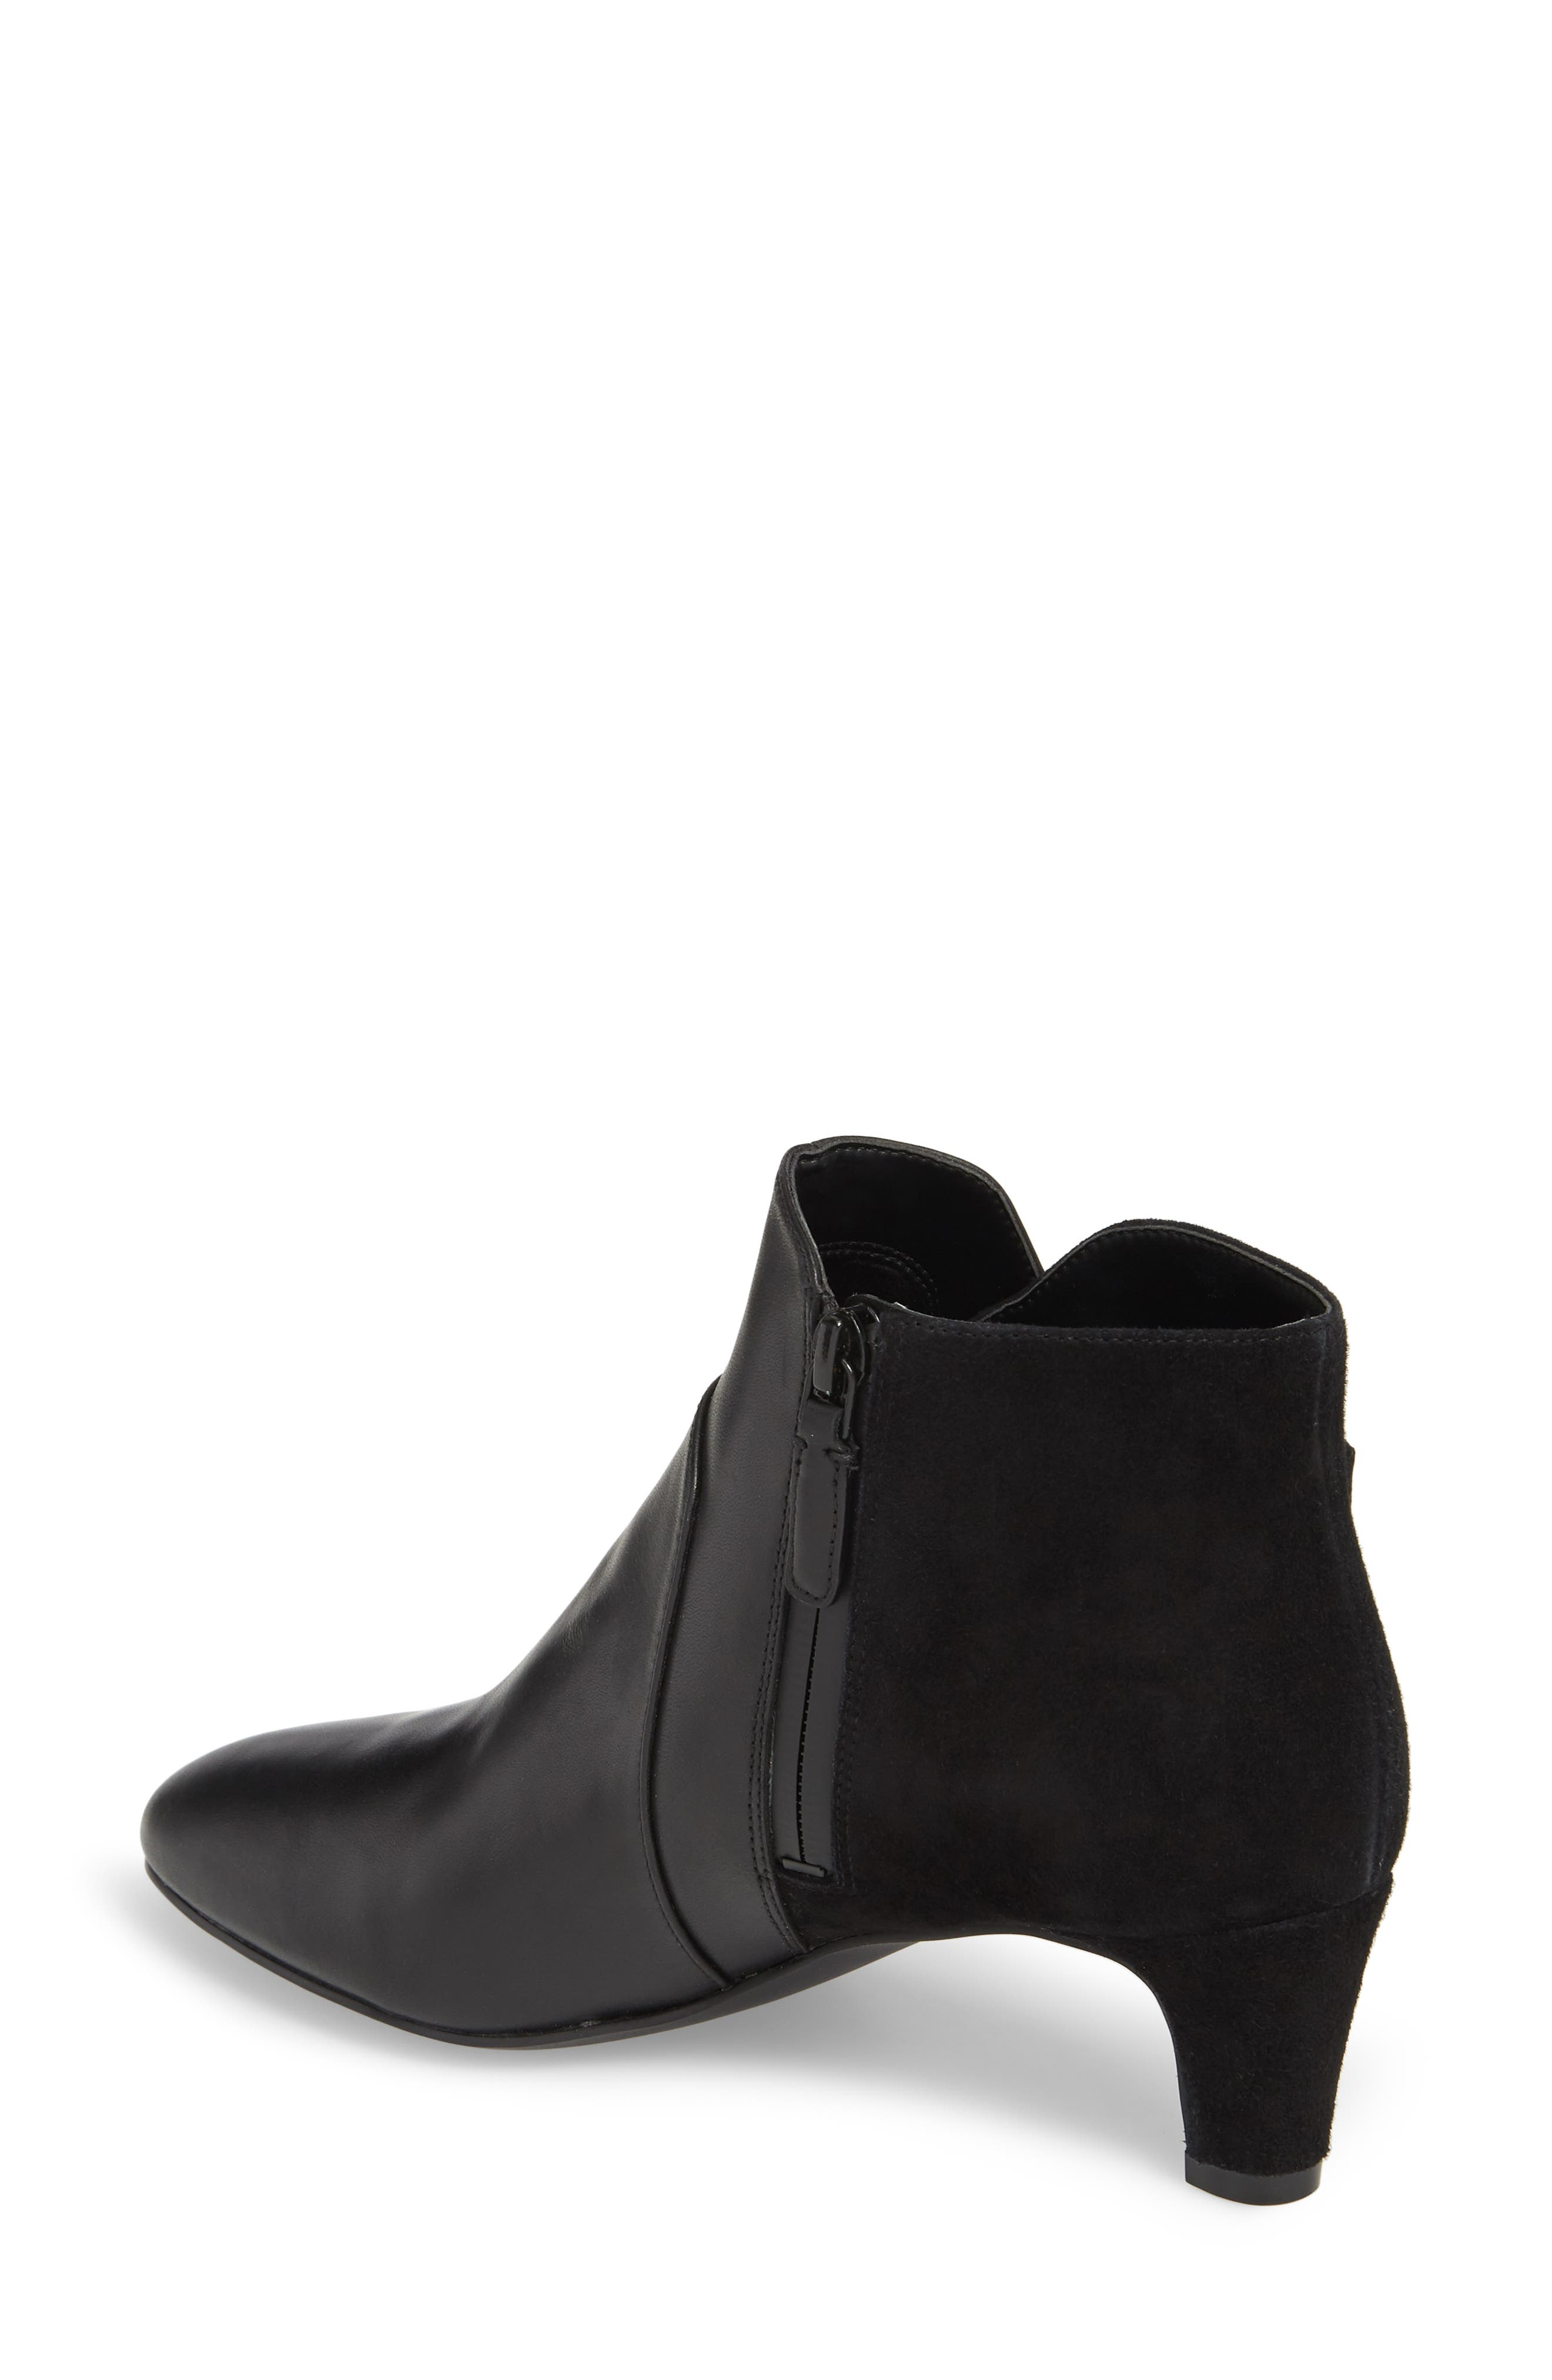 COLE HAAN, Sylvia Waterproof Bootie, Alternate thumbnail 2, color, BLACK LEATHER